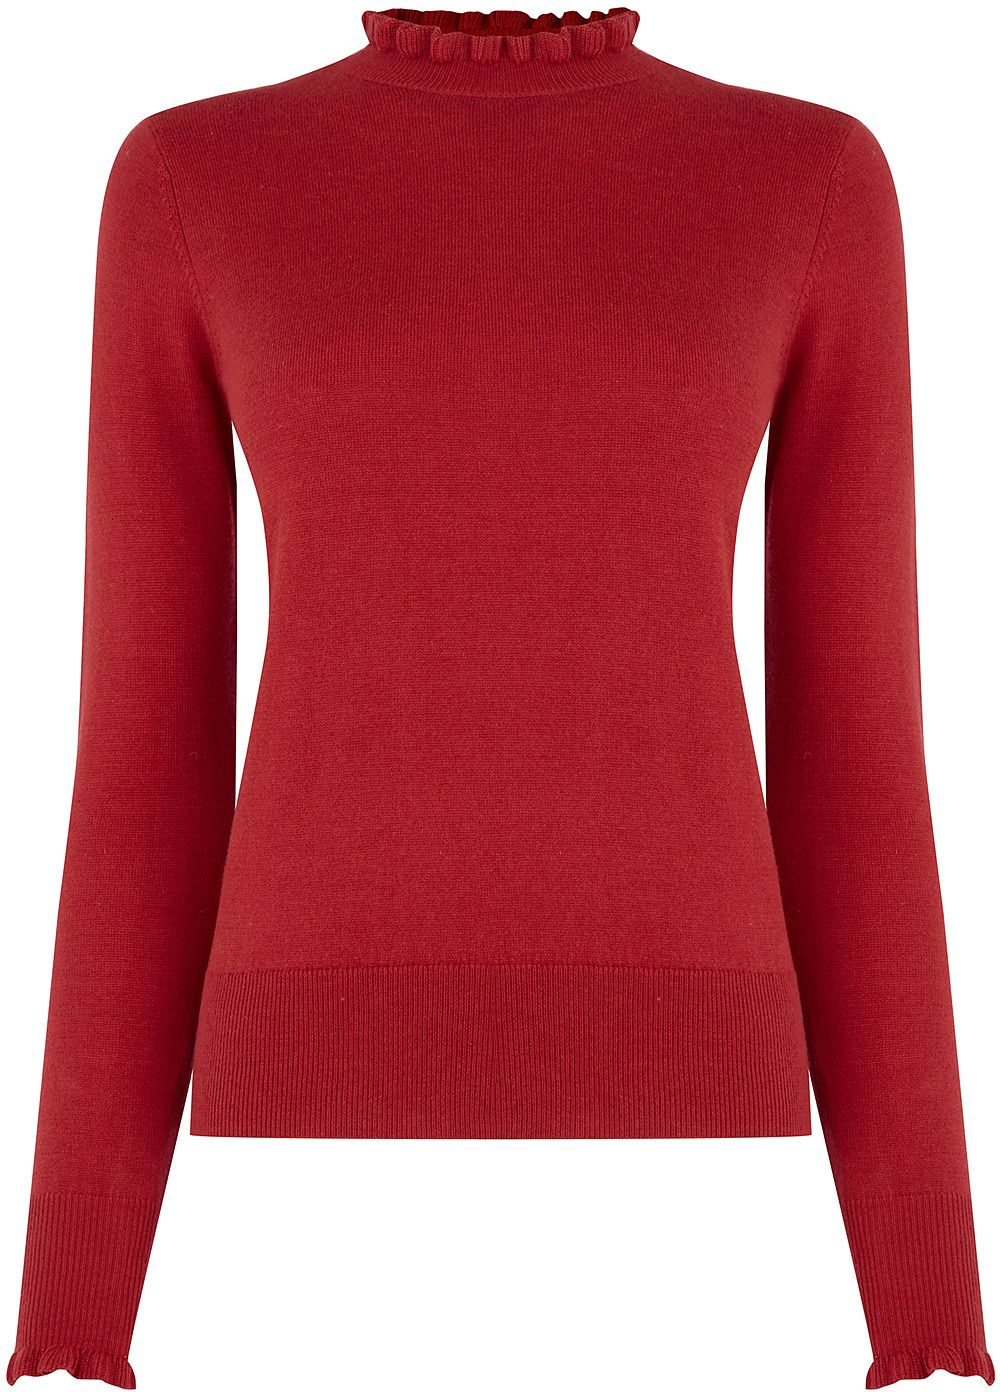 0b3a7a5c575c Womens carmine cute frill knit from Oasis - £28 at ClothingByColour.com